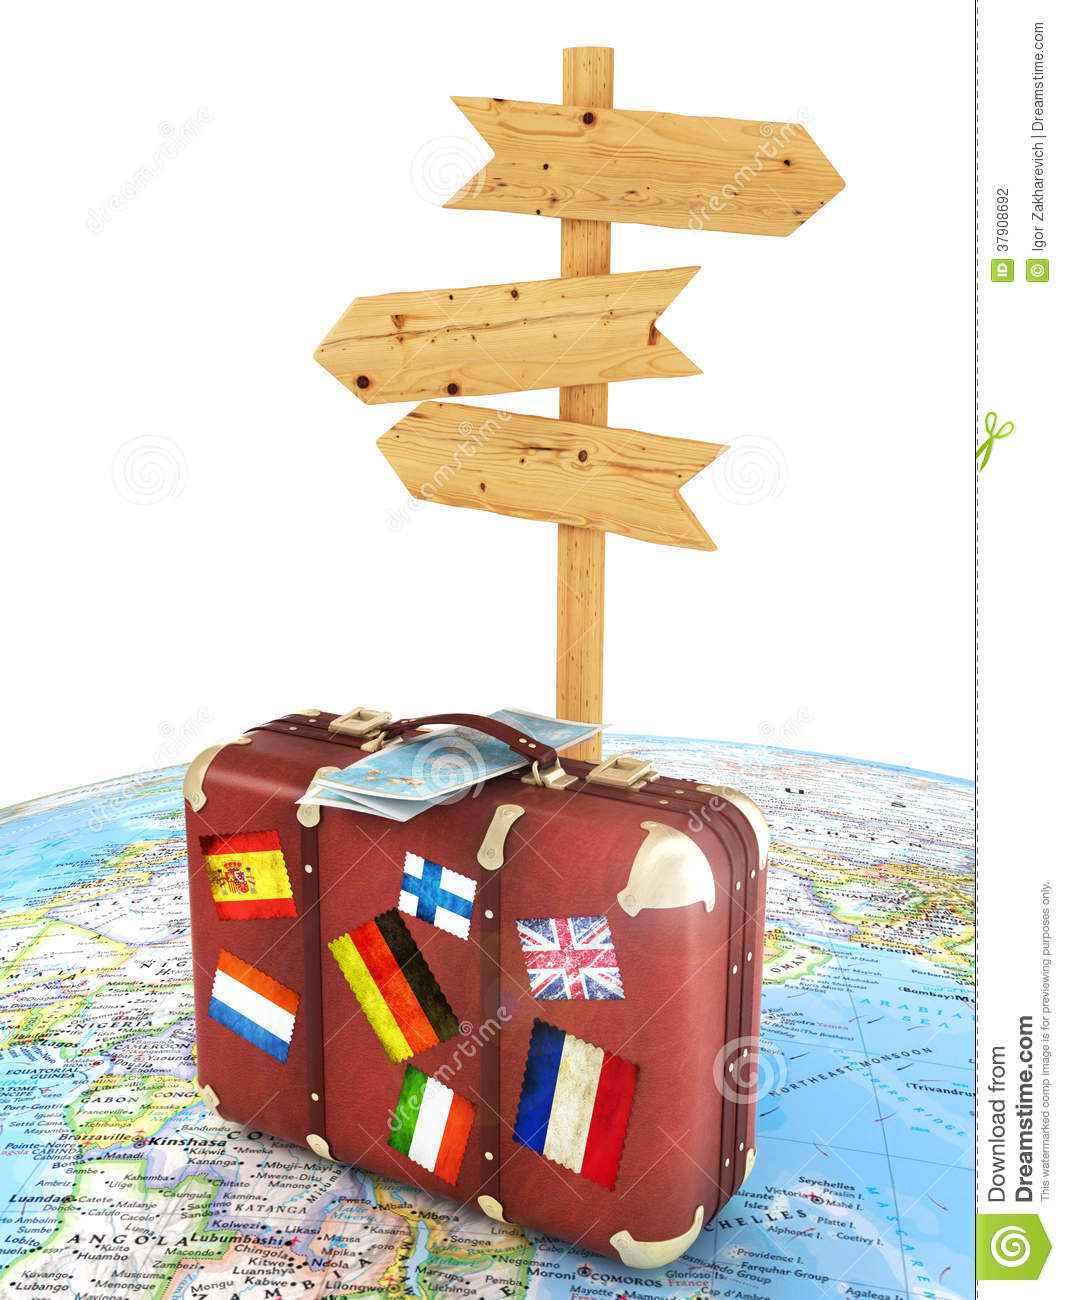 london transportation map with Stock Photography Wood Sign Board Old Suitcase Striples Flags Blurred World Map Sky Background Image37908692 on Saskatoon Map in addition Summer 2 In 1 Iceland And Greenland In One Trip From London For 375 moreover Salzburg Card furthermore Kyiv Chernobyl Private Tour 2018 together with Stock Photography Wood Sign Board Old Suitcase Striples Flags Blurred World Map Sky Background Image37908692.